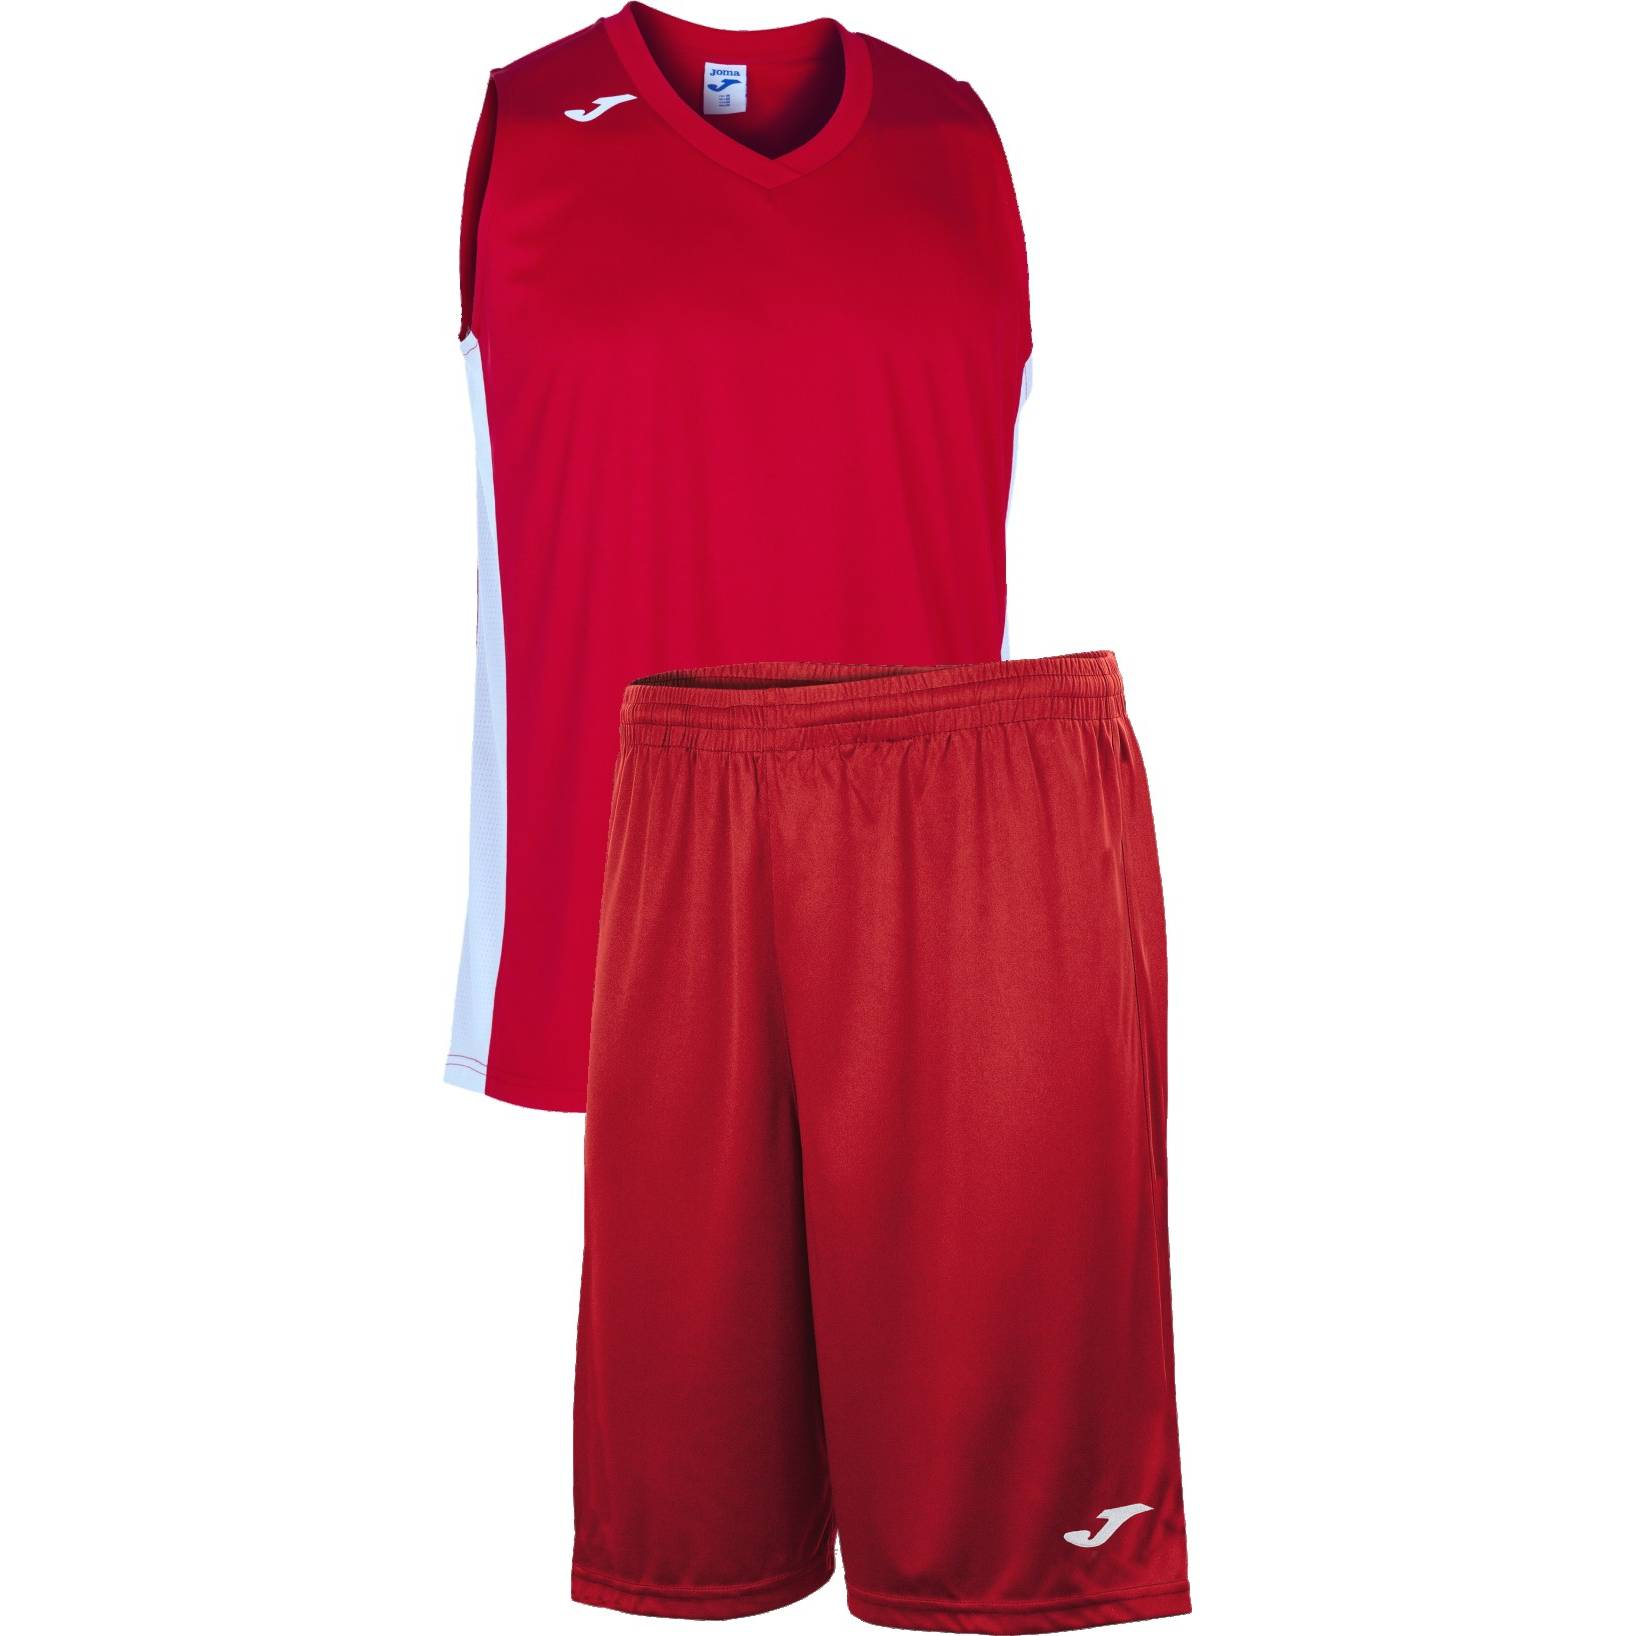 Teamwear - Joma Cancha Sleeveless  & Nobel Long Shorts Set - Red/White - JO-101573-602-101648-White